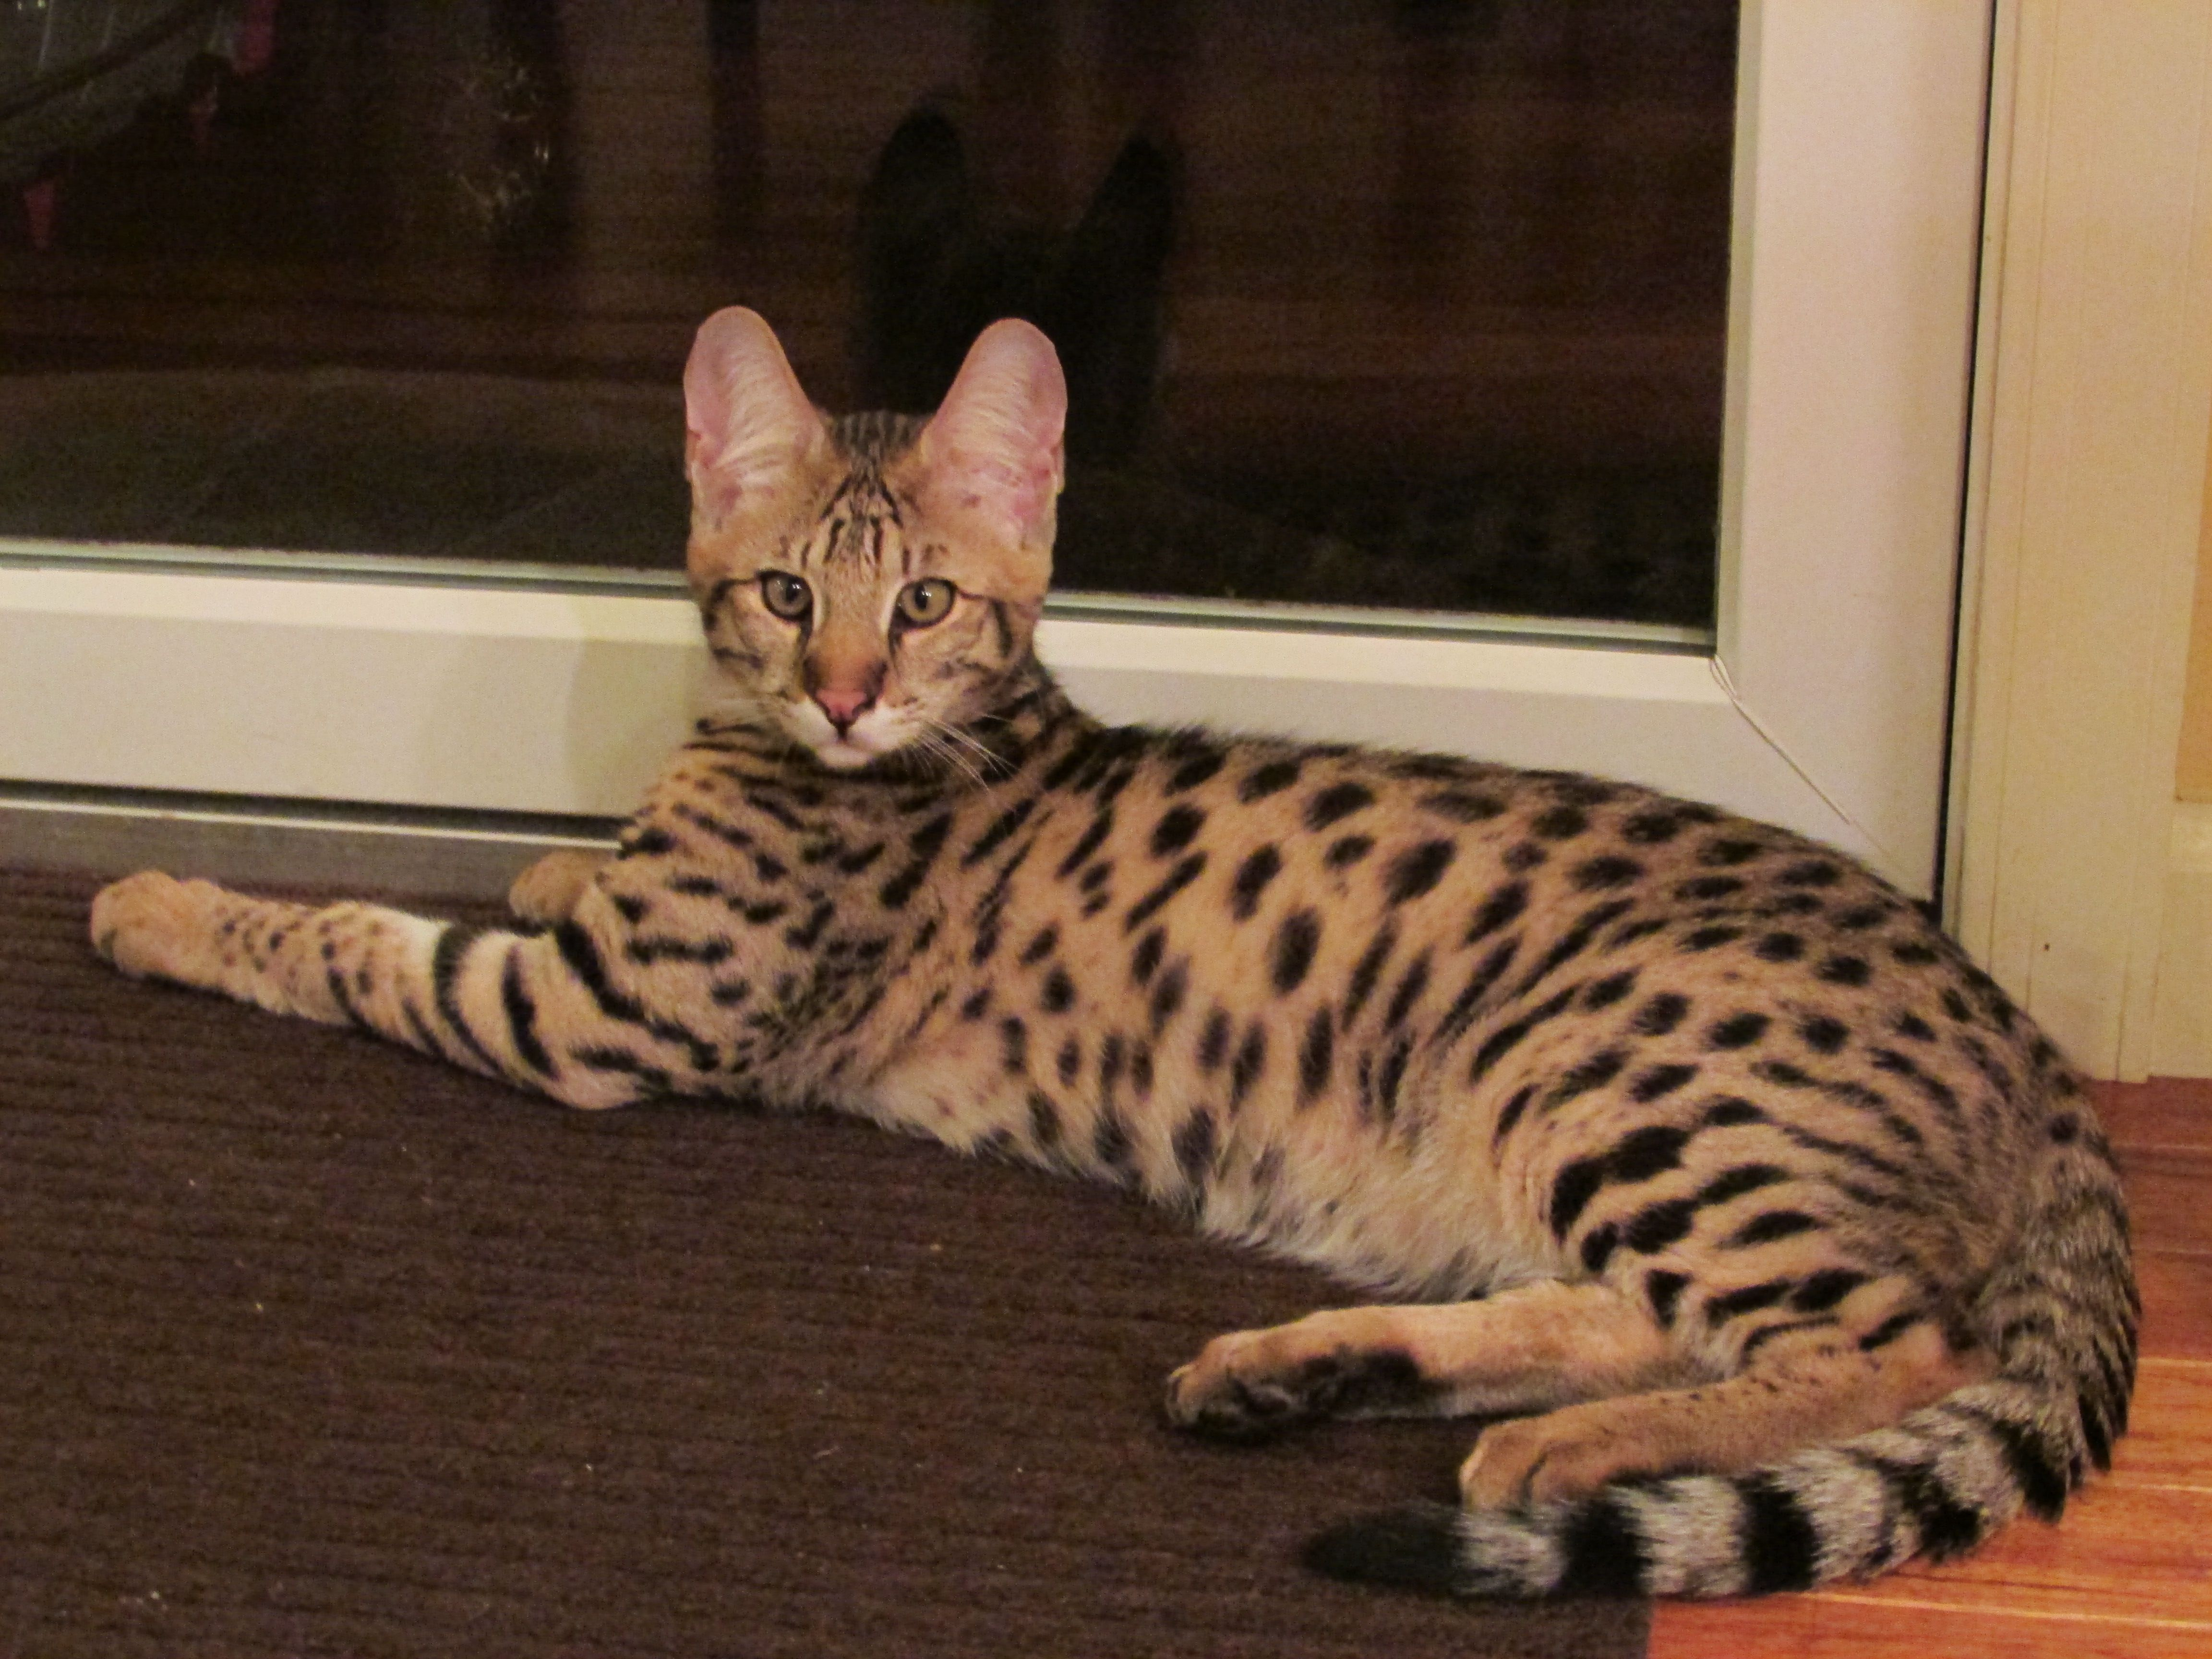 5 Month Old F2 Savannah Kitten Barrington Relaxing In His New Home Contact Me To Own Your Own Stunn Savannah Kitten Savannah Cat For Sale Kitten Wallpaper